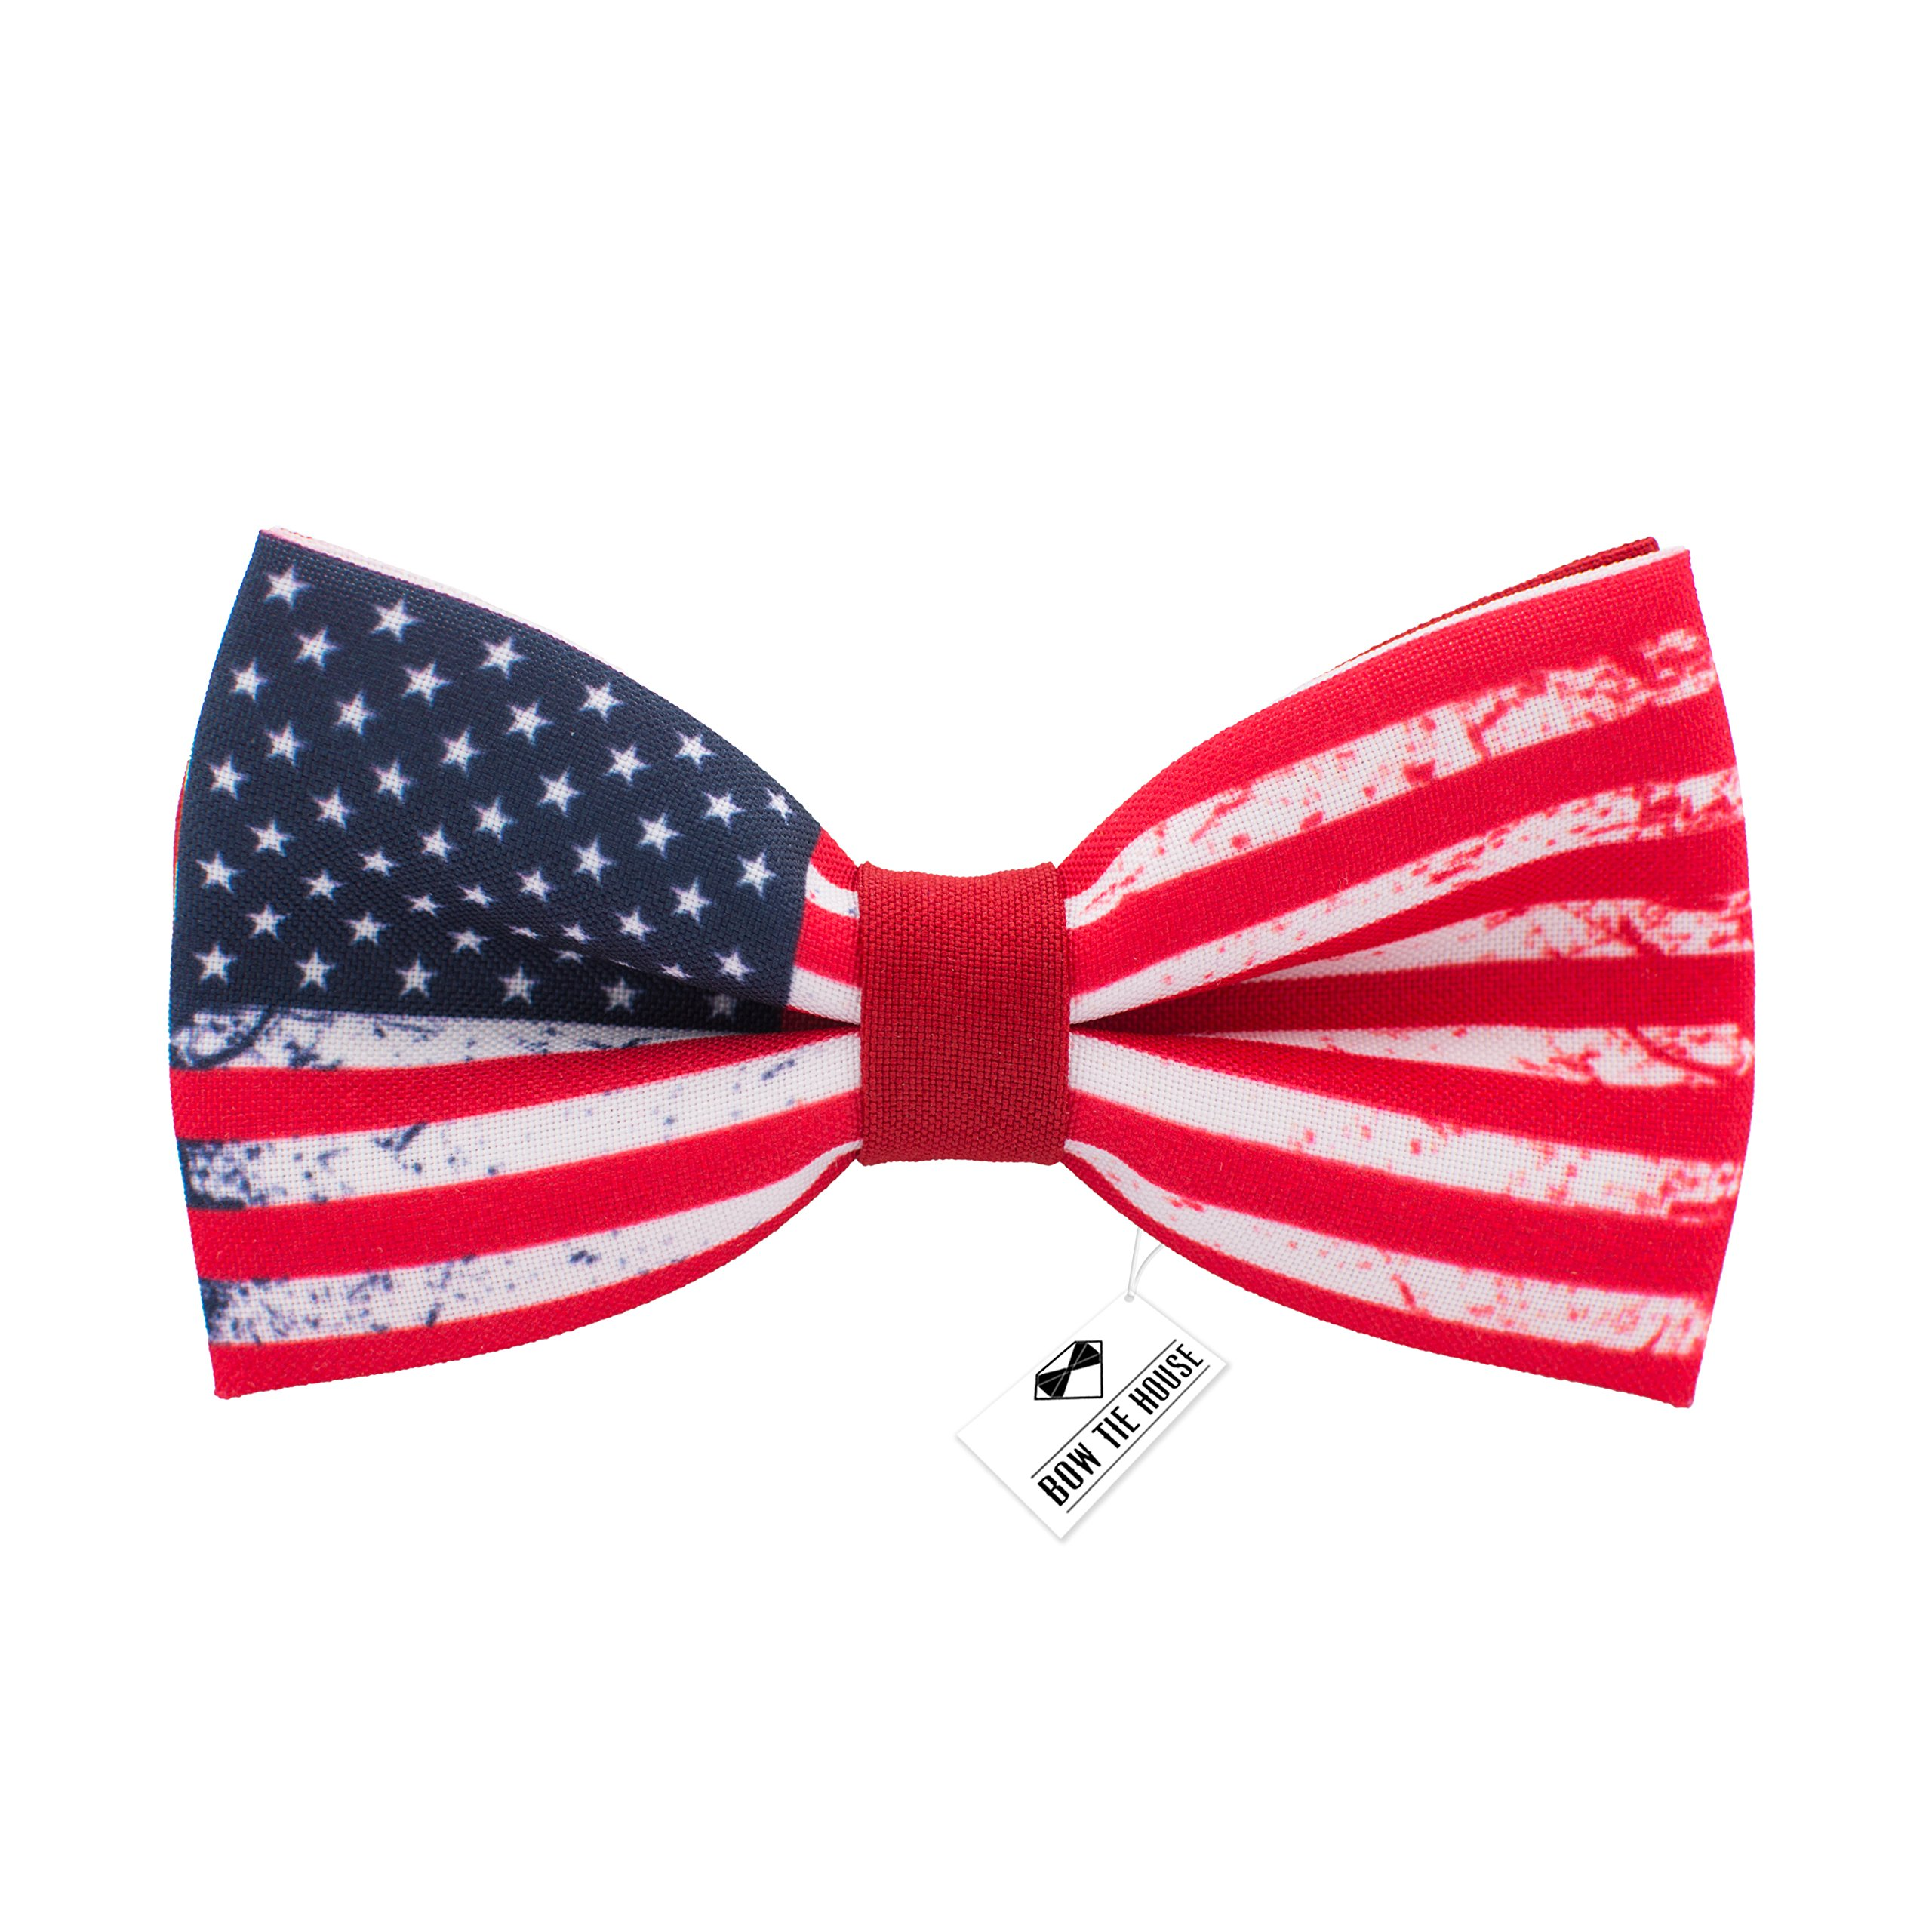 US flag bow tie 4th of July - pre-tied patriotic pattern+gift box, by Bow Tie House (Medium, Red)